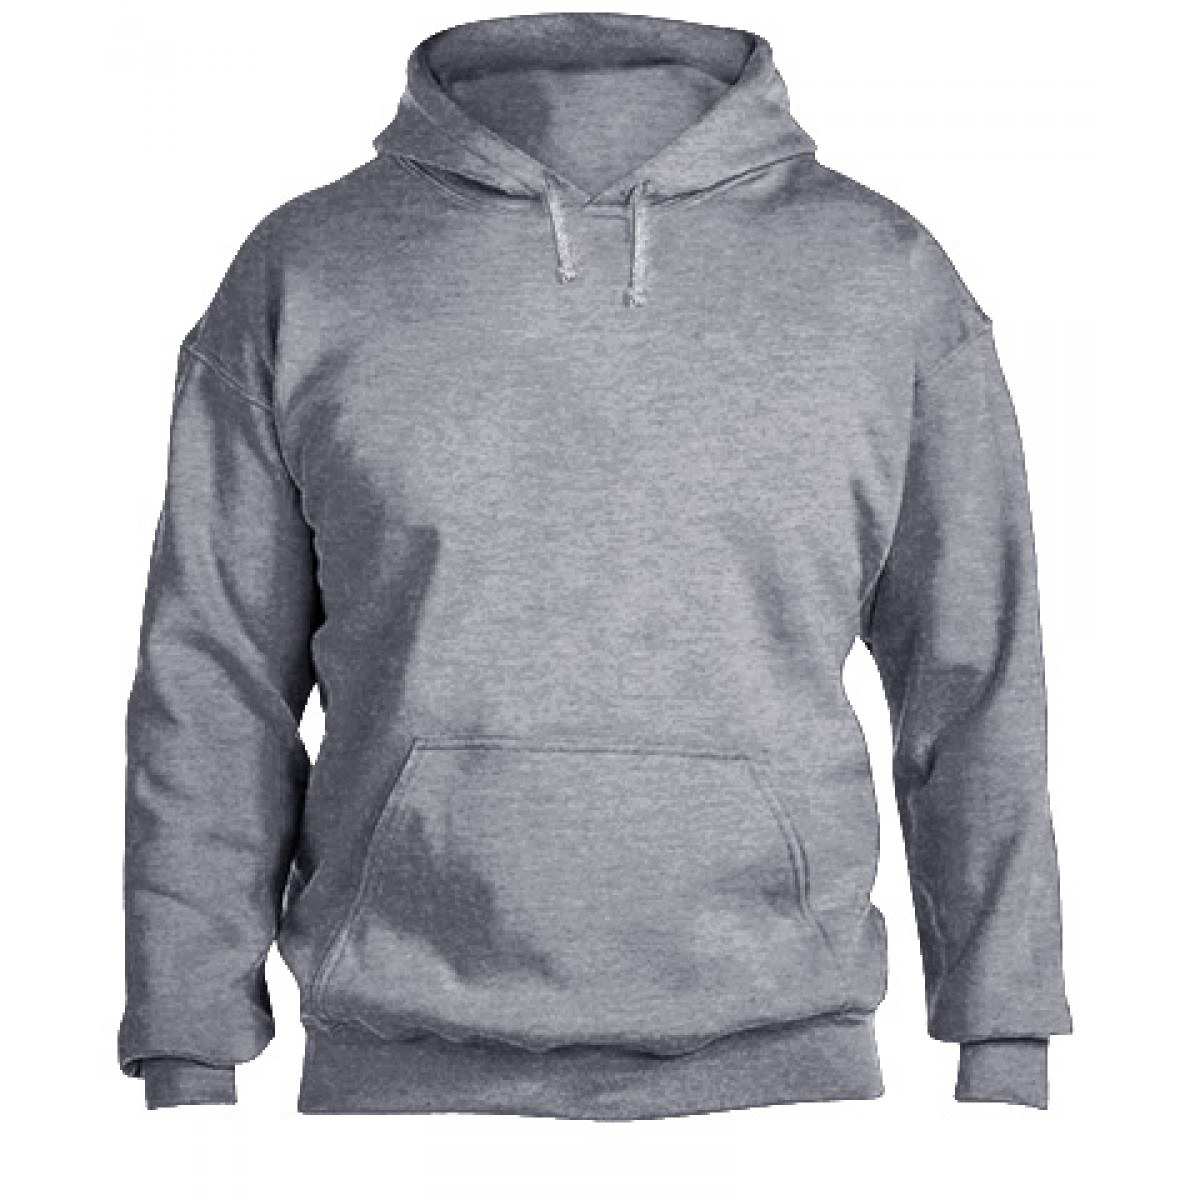 Jersey Lined Adidas Hood With Flat Drawcord